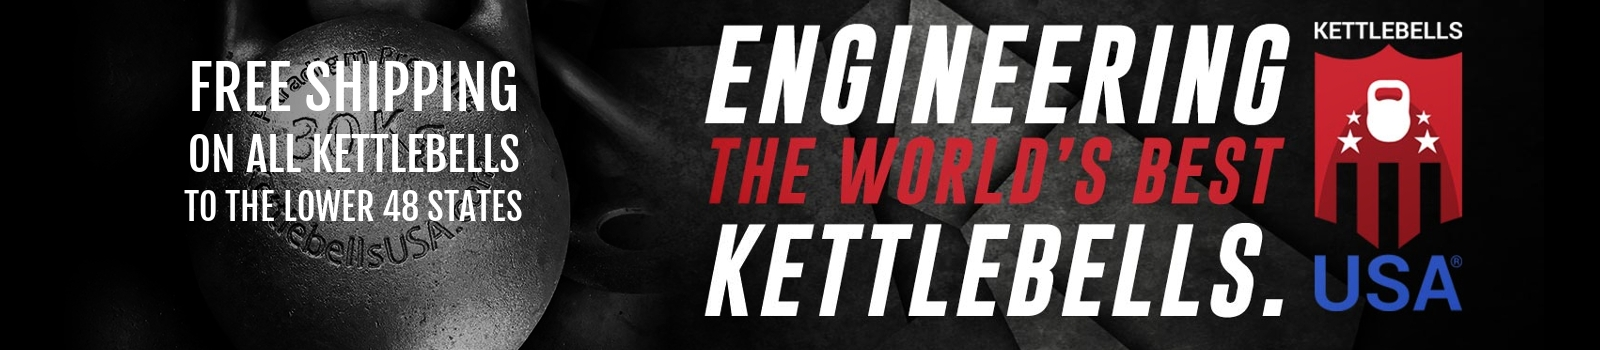 Free Shipping on all Kettlebells USA Kettlebells